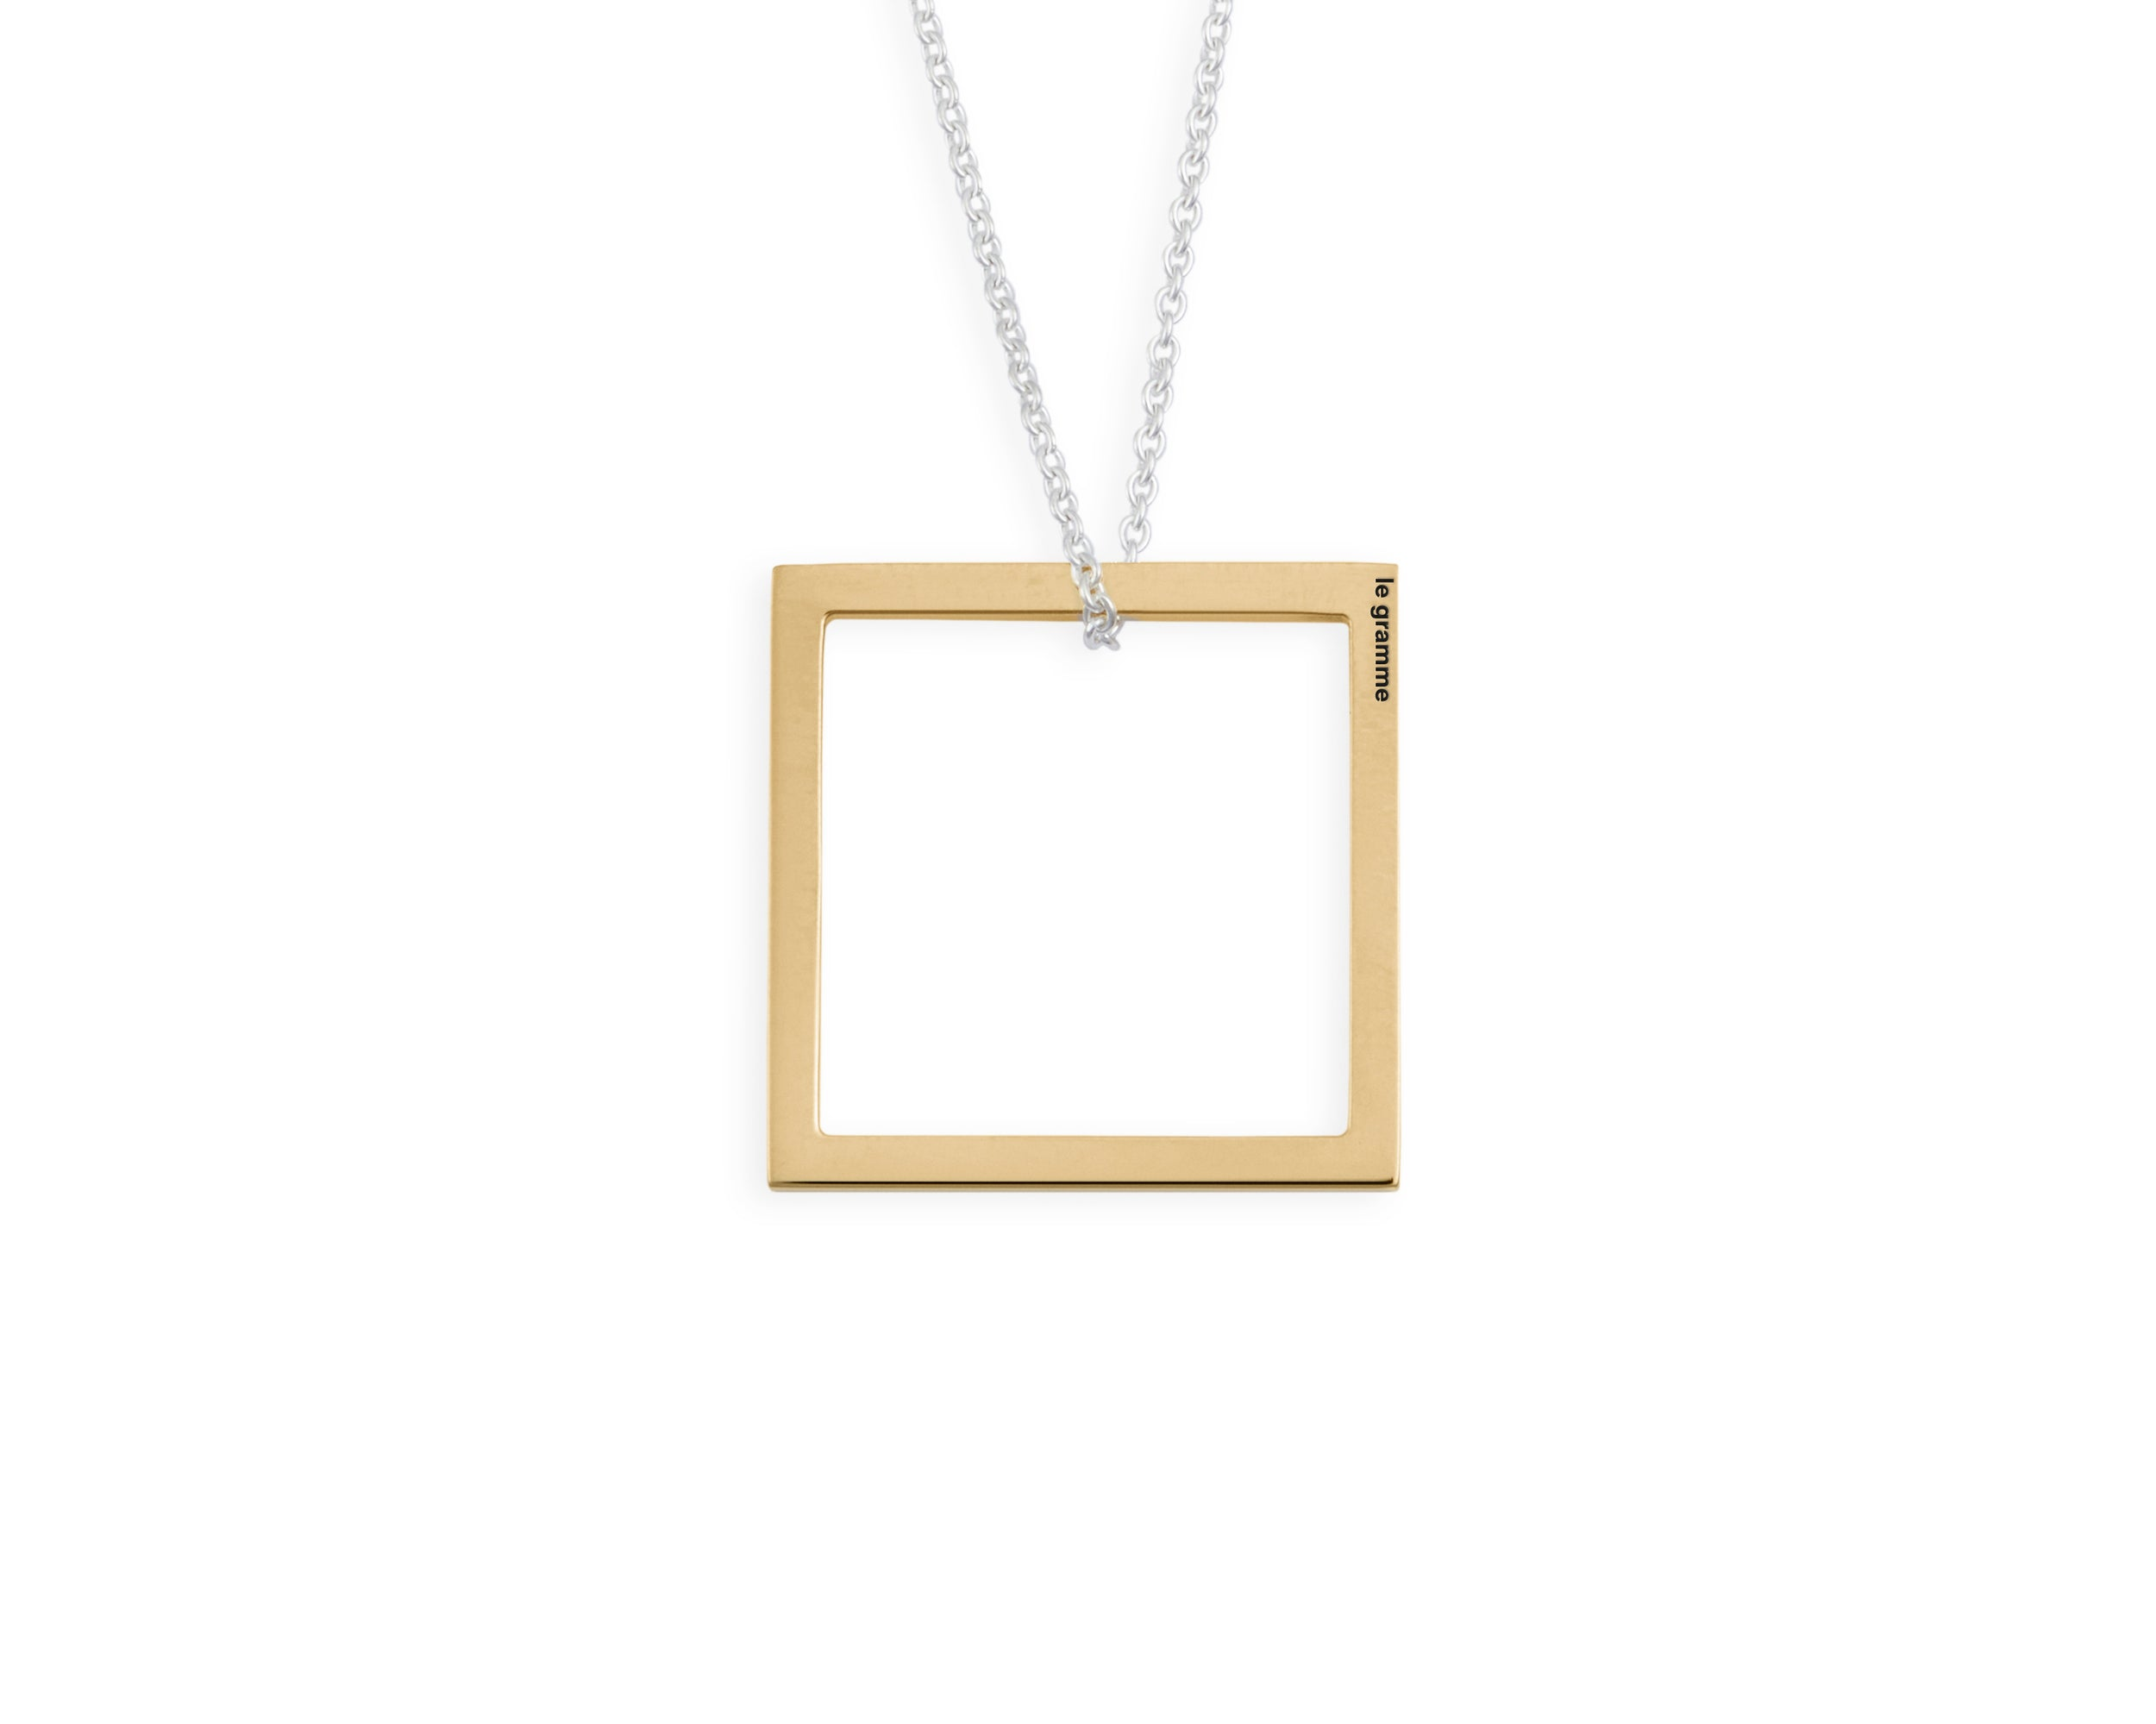 collier carré le 1,5g